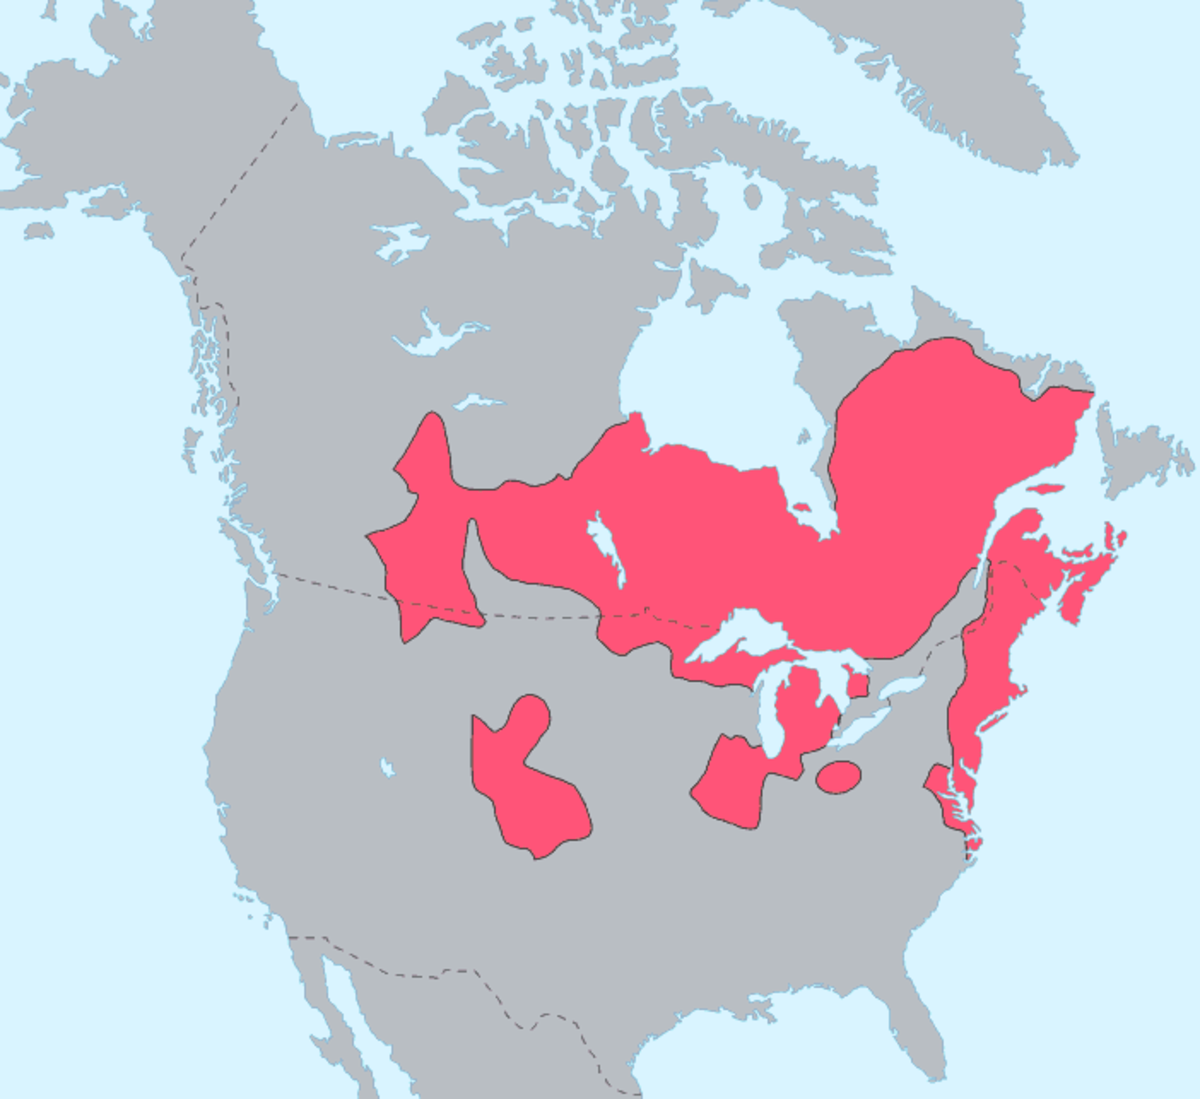 The red areas of the map shows where the Algonquian peoples have resided,